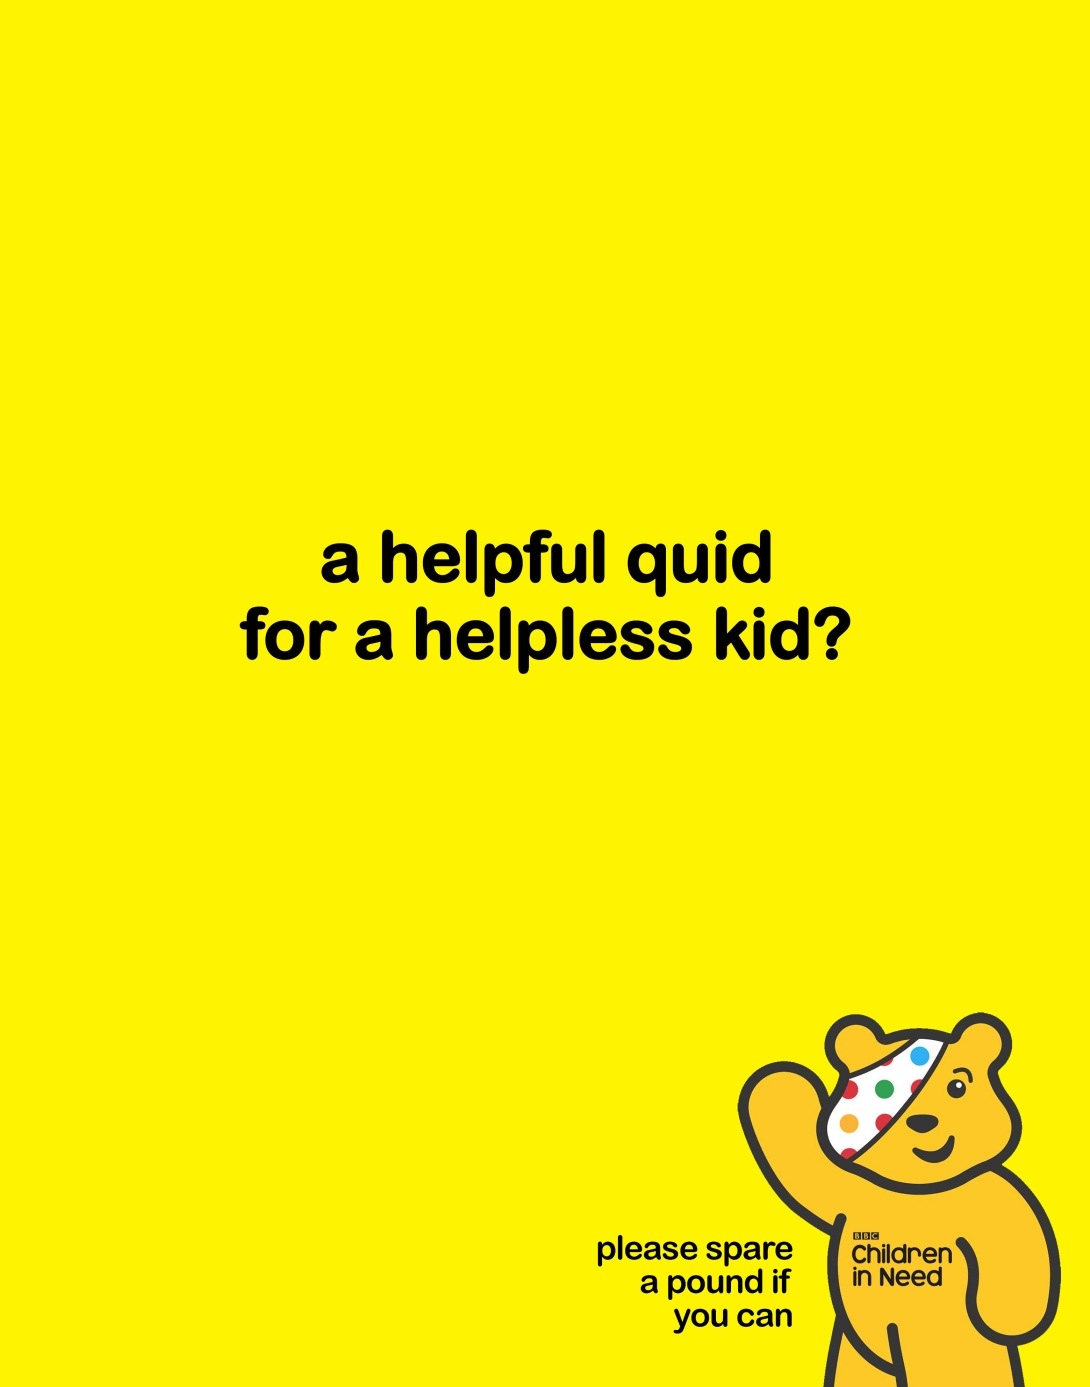 poster idea for Children in Need - the BBC's kids charity in the UK